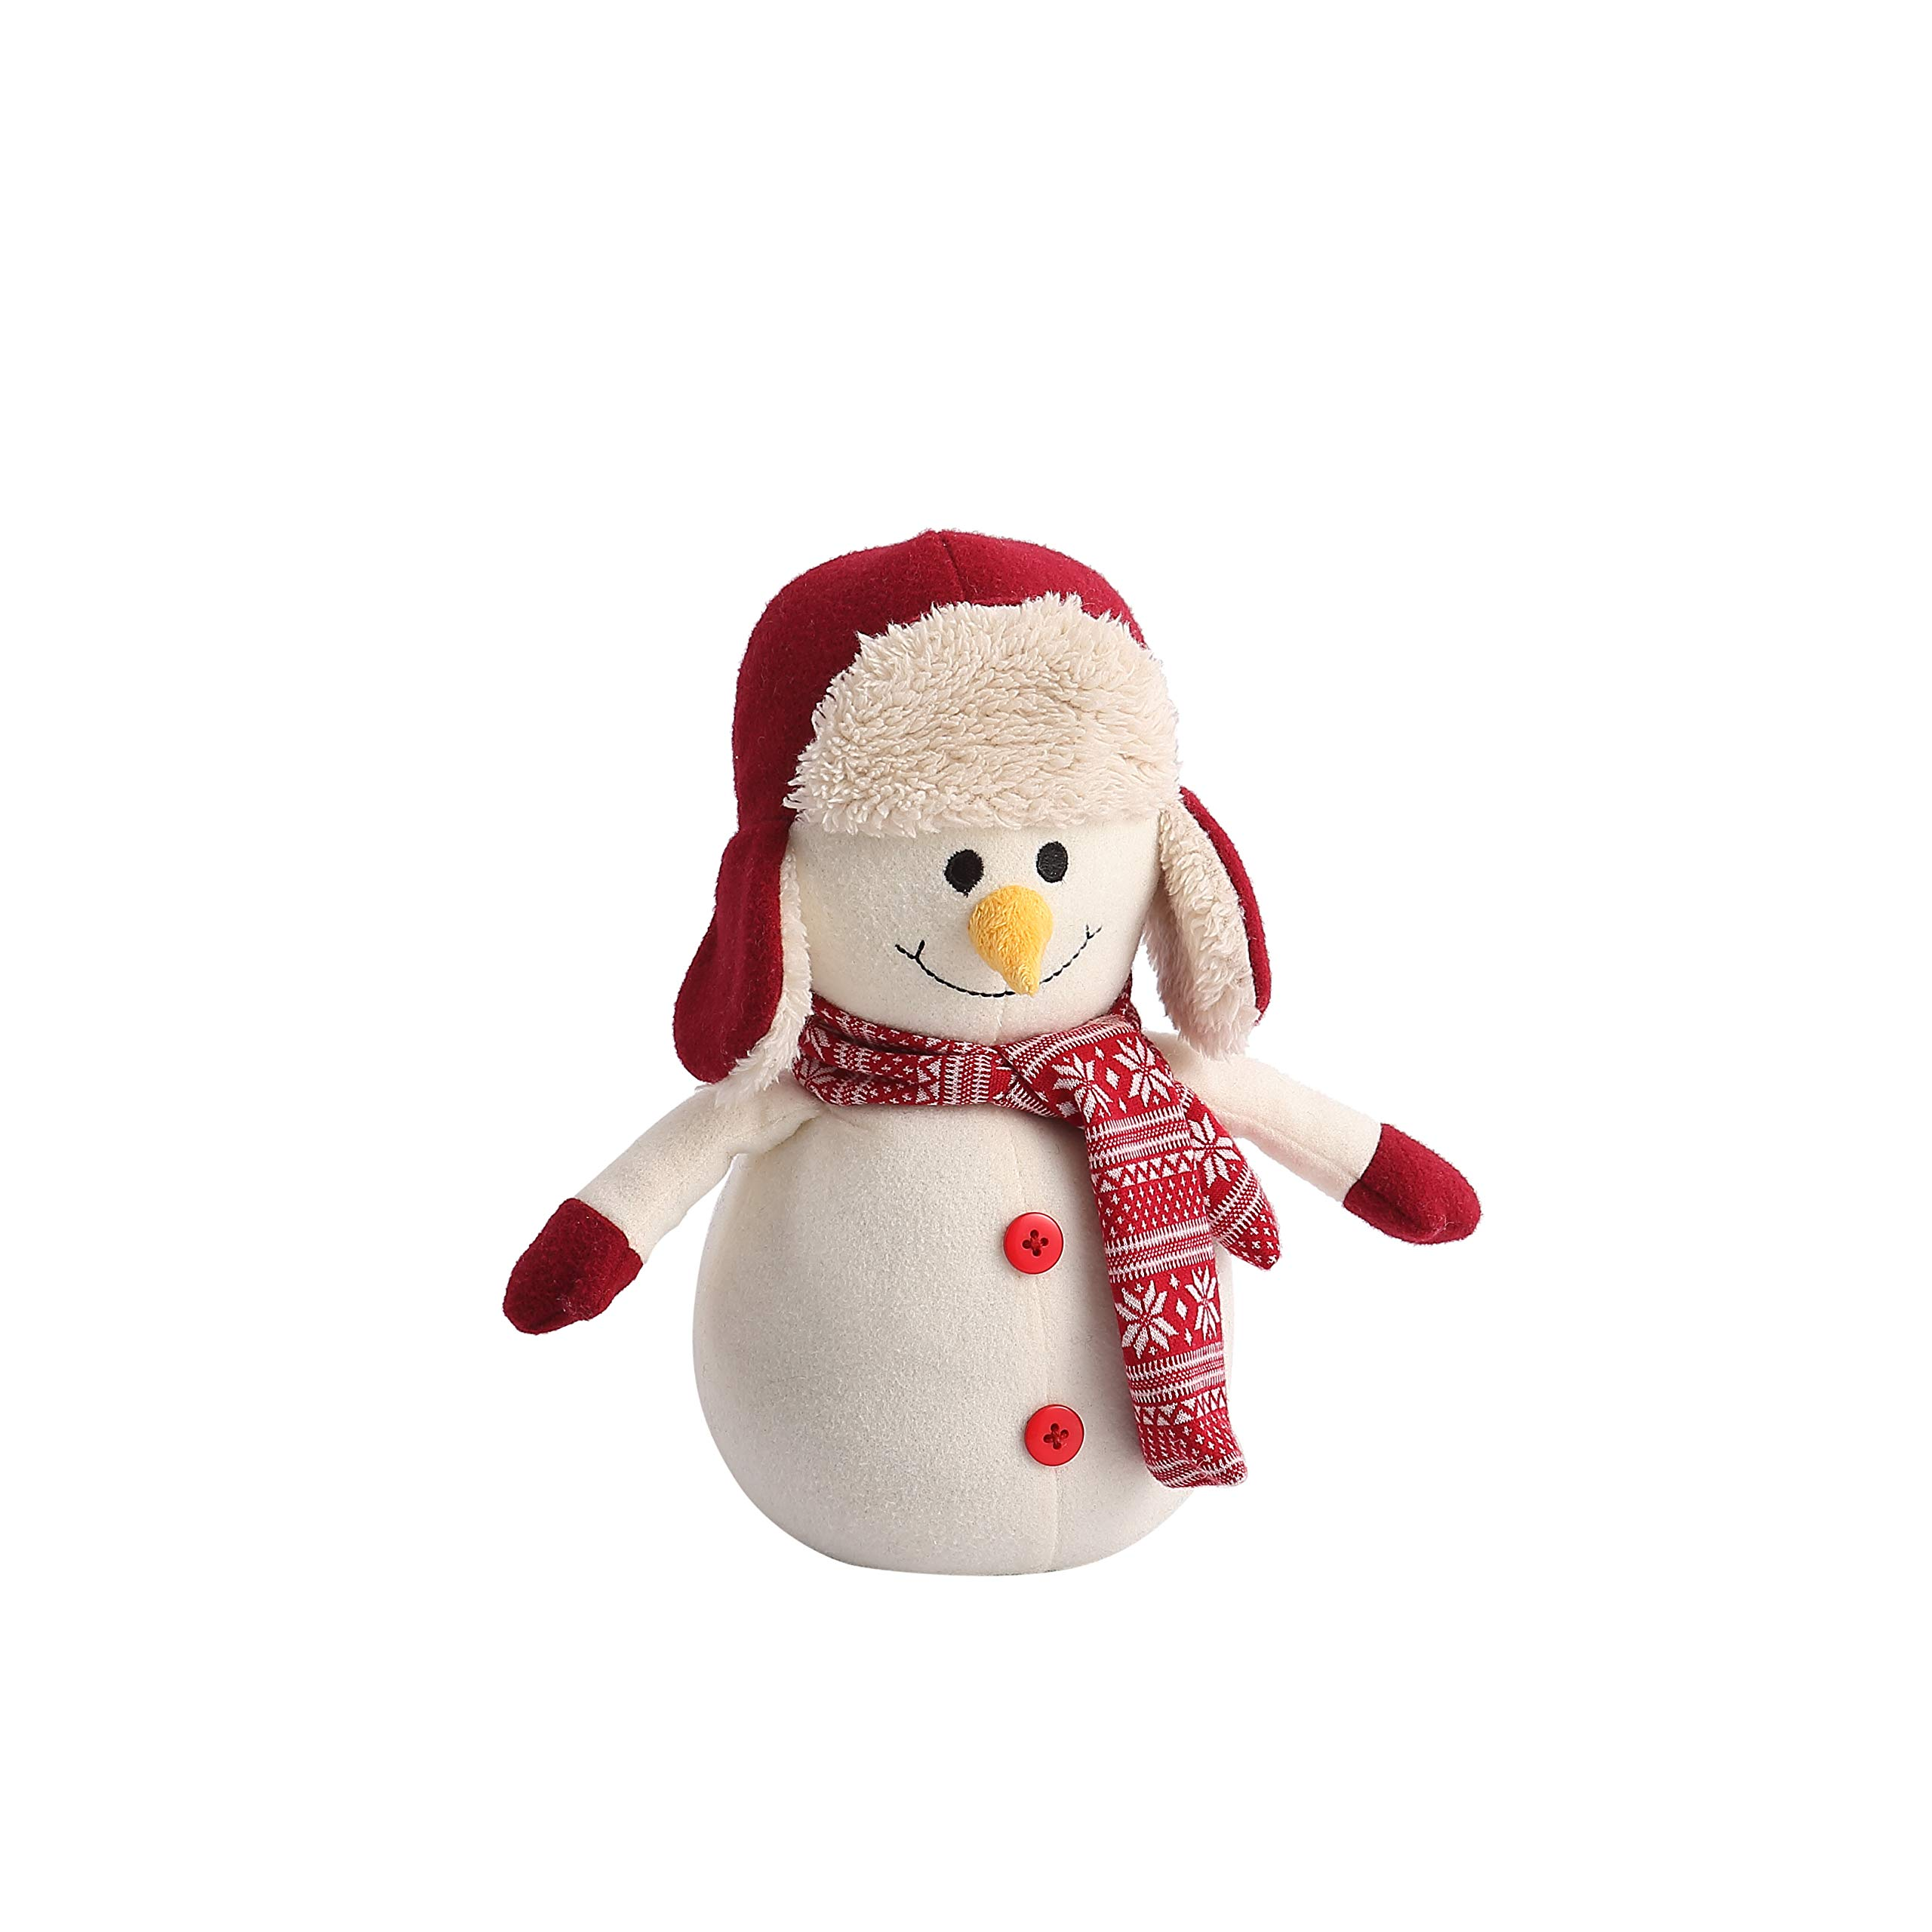 Decorative Door Stopper by Morgan Home – Available in Many Adorable Animals and Styles – Durable, Subtle Home Decor Measures Approx. 11 x 5.5 x 5.5 in Perfect Christmas Gift (White Snowman)